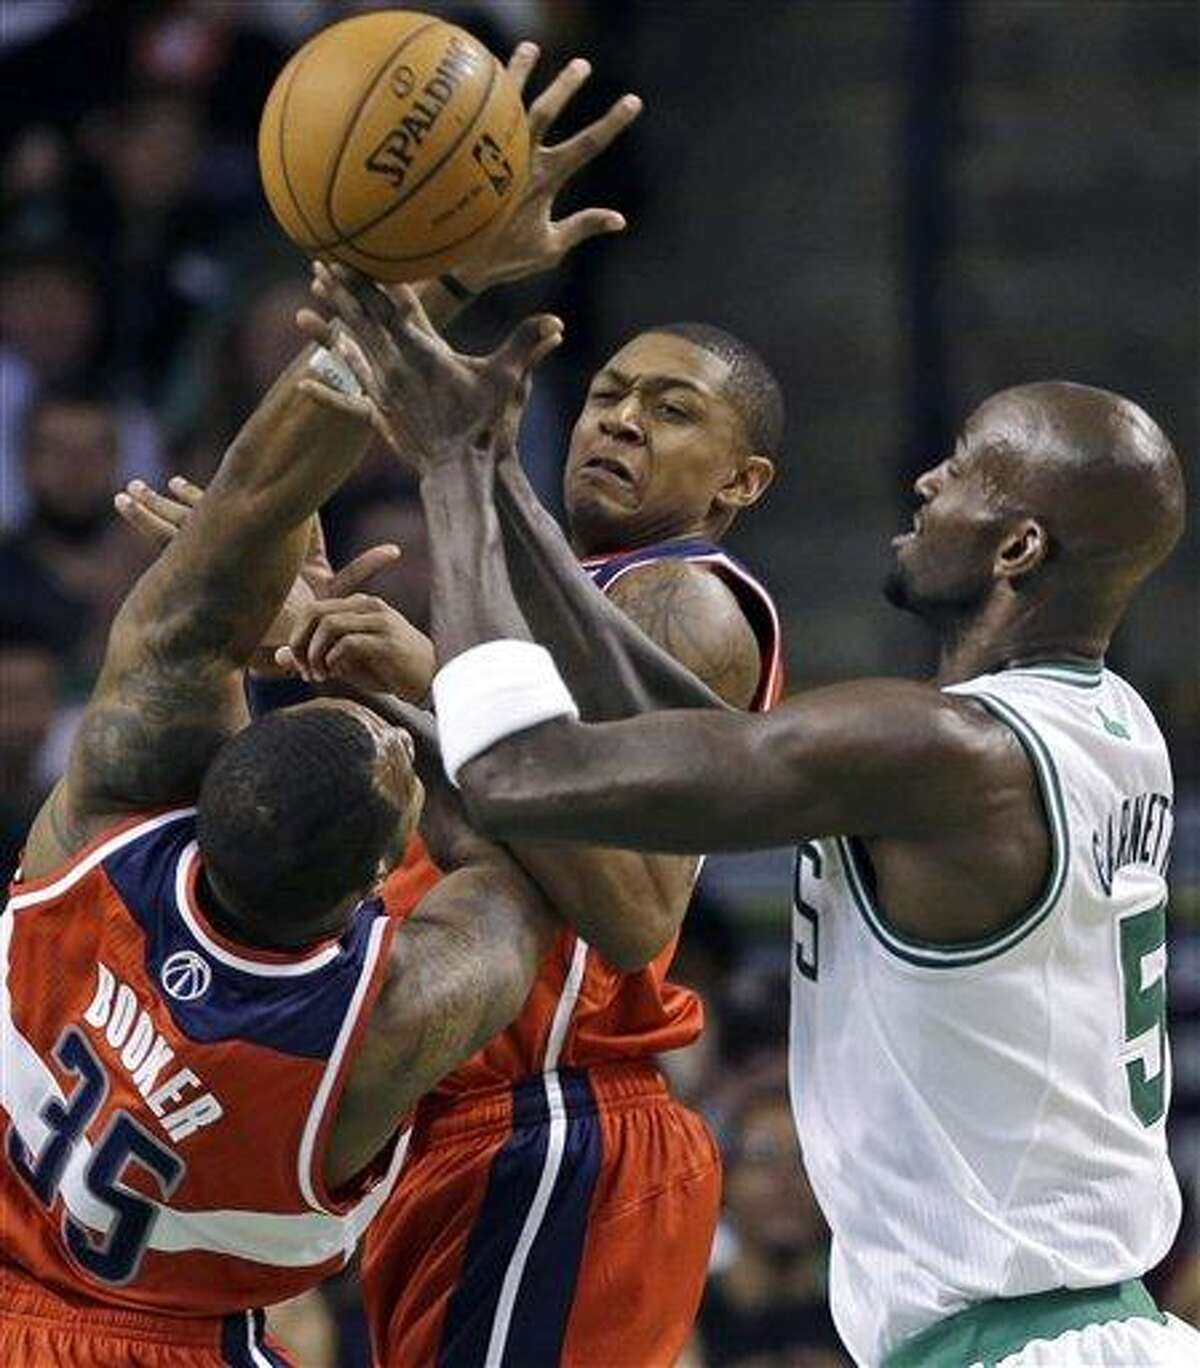 CORRECTS ID OF WIZARDS PLAYER AT MIDDLE TO BRADLEY BEAL, INSTEAD OF A.J. PRICE - Washington Wizards forward Trevor Booker (35) and guard Bradley Beal, middle, vie for a loose ball with Boston Celtics forward Kevin Garnett (5) during the first half of an NBA basketball game in Boston on Wednesday, Nov. 7, 2012. (AP Photo/Elise Amendola)